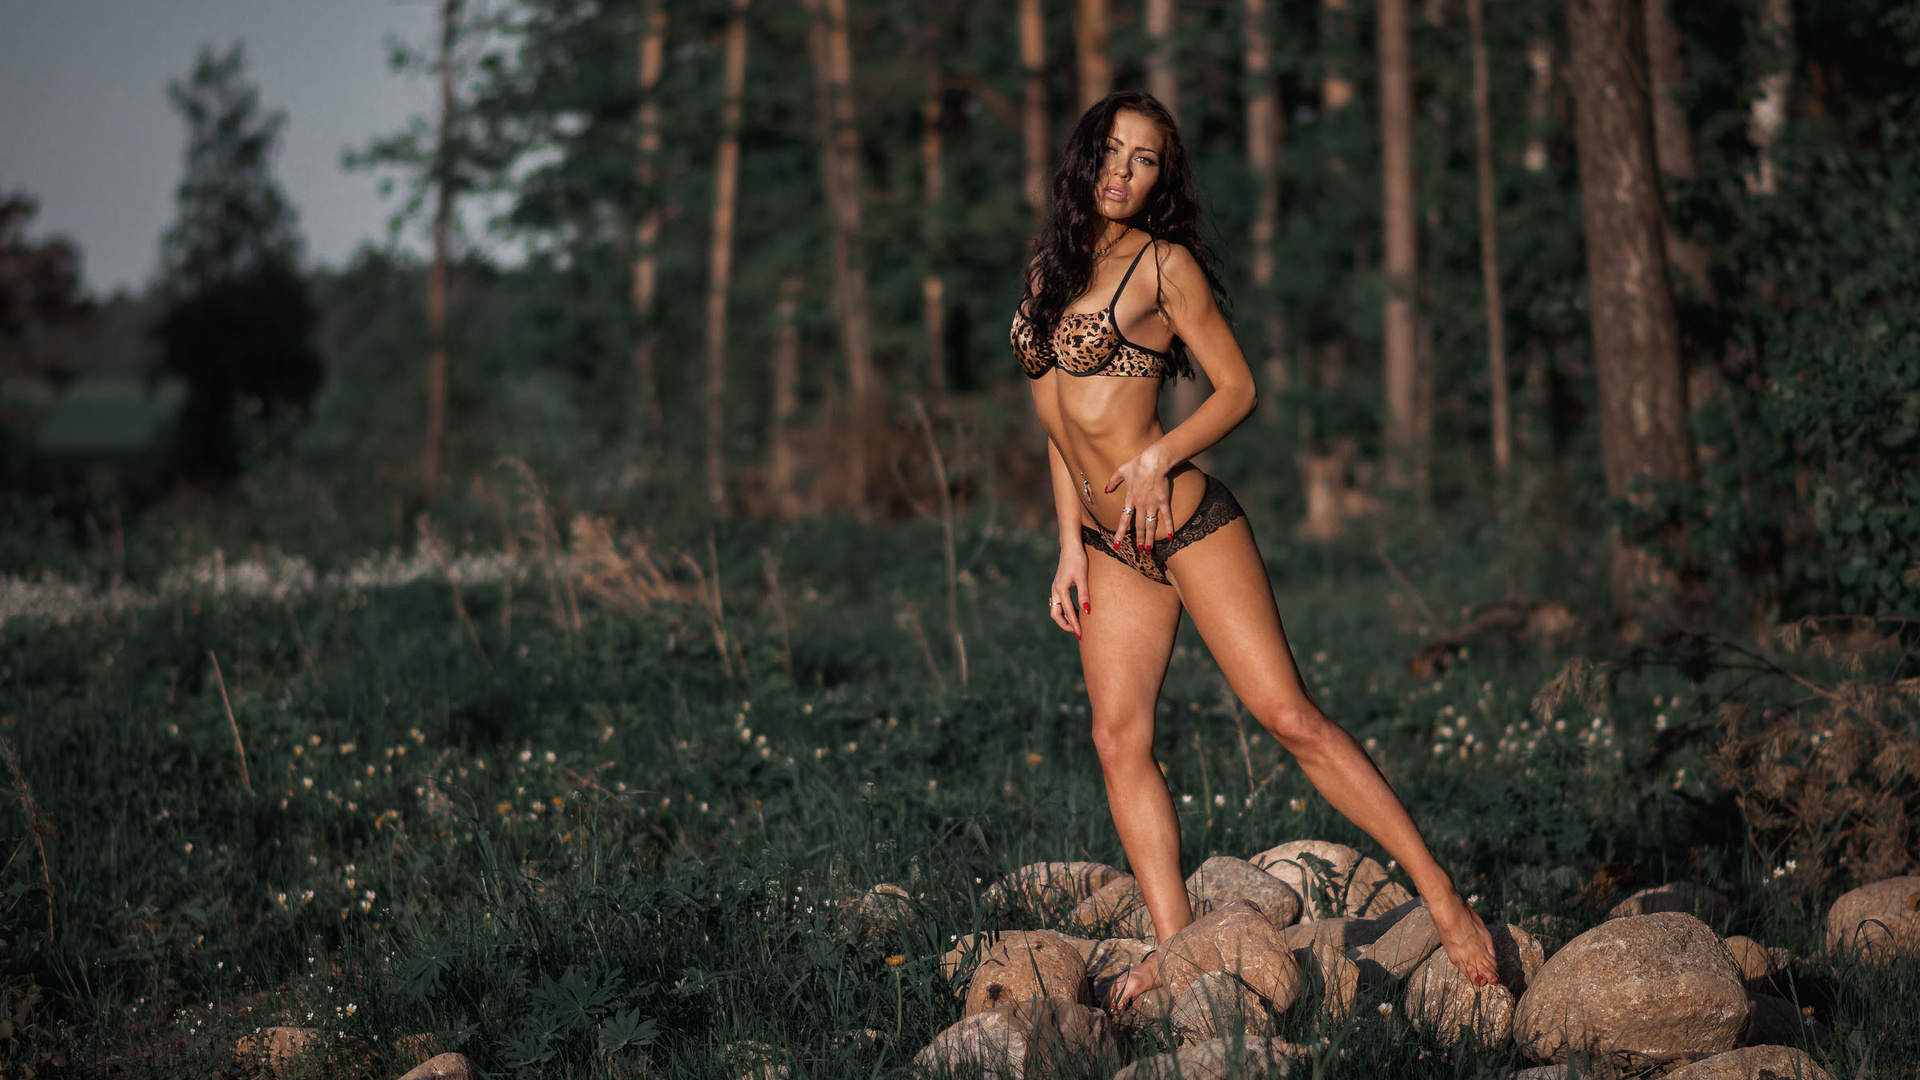 women, tanned, lingerie, red nails, ribs, pierced navel, trees, forest